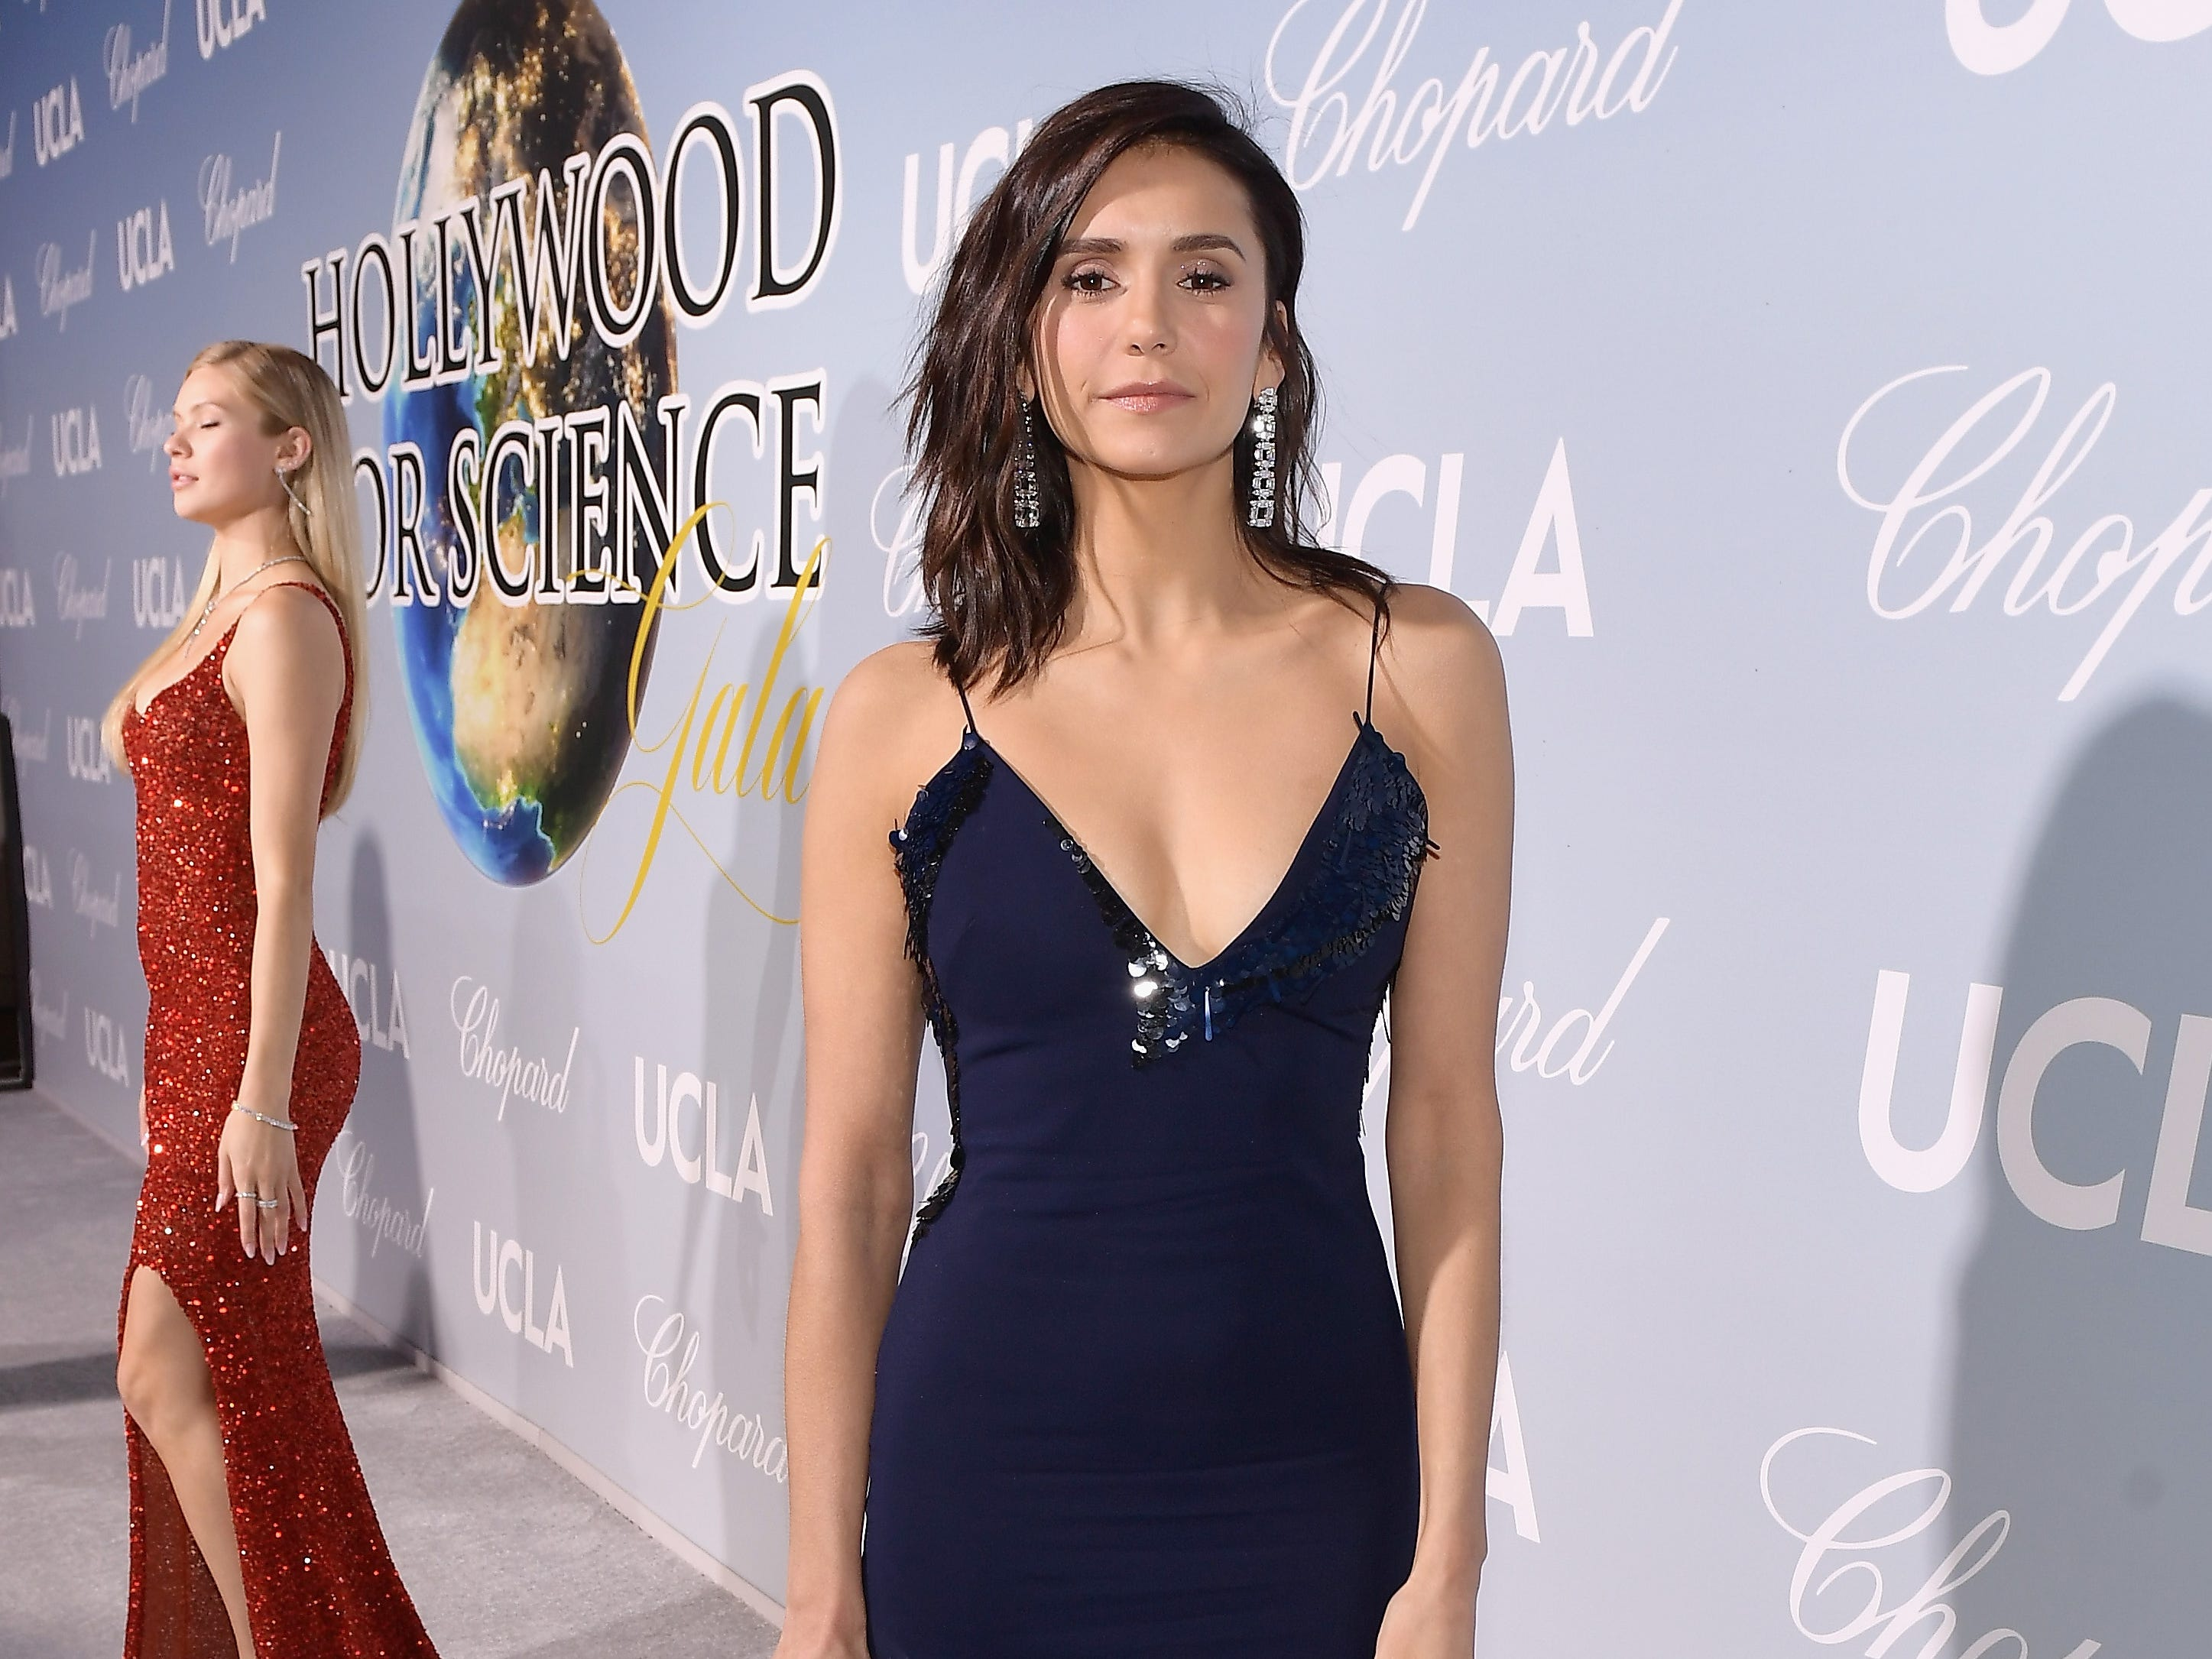 BEVERLY HILLS, CA - FEBRUARY 21:  Nina Dobrev attends the UCLA IoES honors Barbra Streisand and Gisele Bundchen at the 2019 Hollywood for Science Gala on February 21, 2019 in Beverly Hills, California.  (Photo by Matt Winkelmeyer/Getty Images for UCLA Institute of the Environment & Sustainability) ORG XMIT: 775301825 ORIG FILE ID: 1126649943